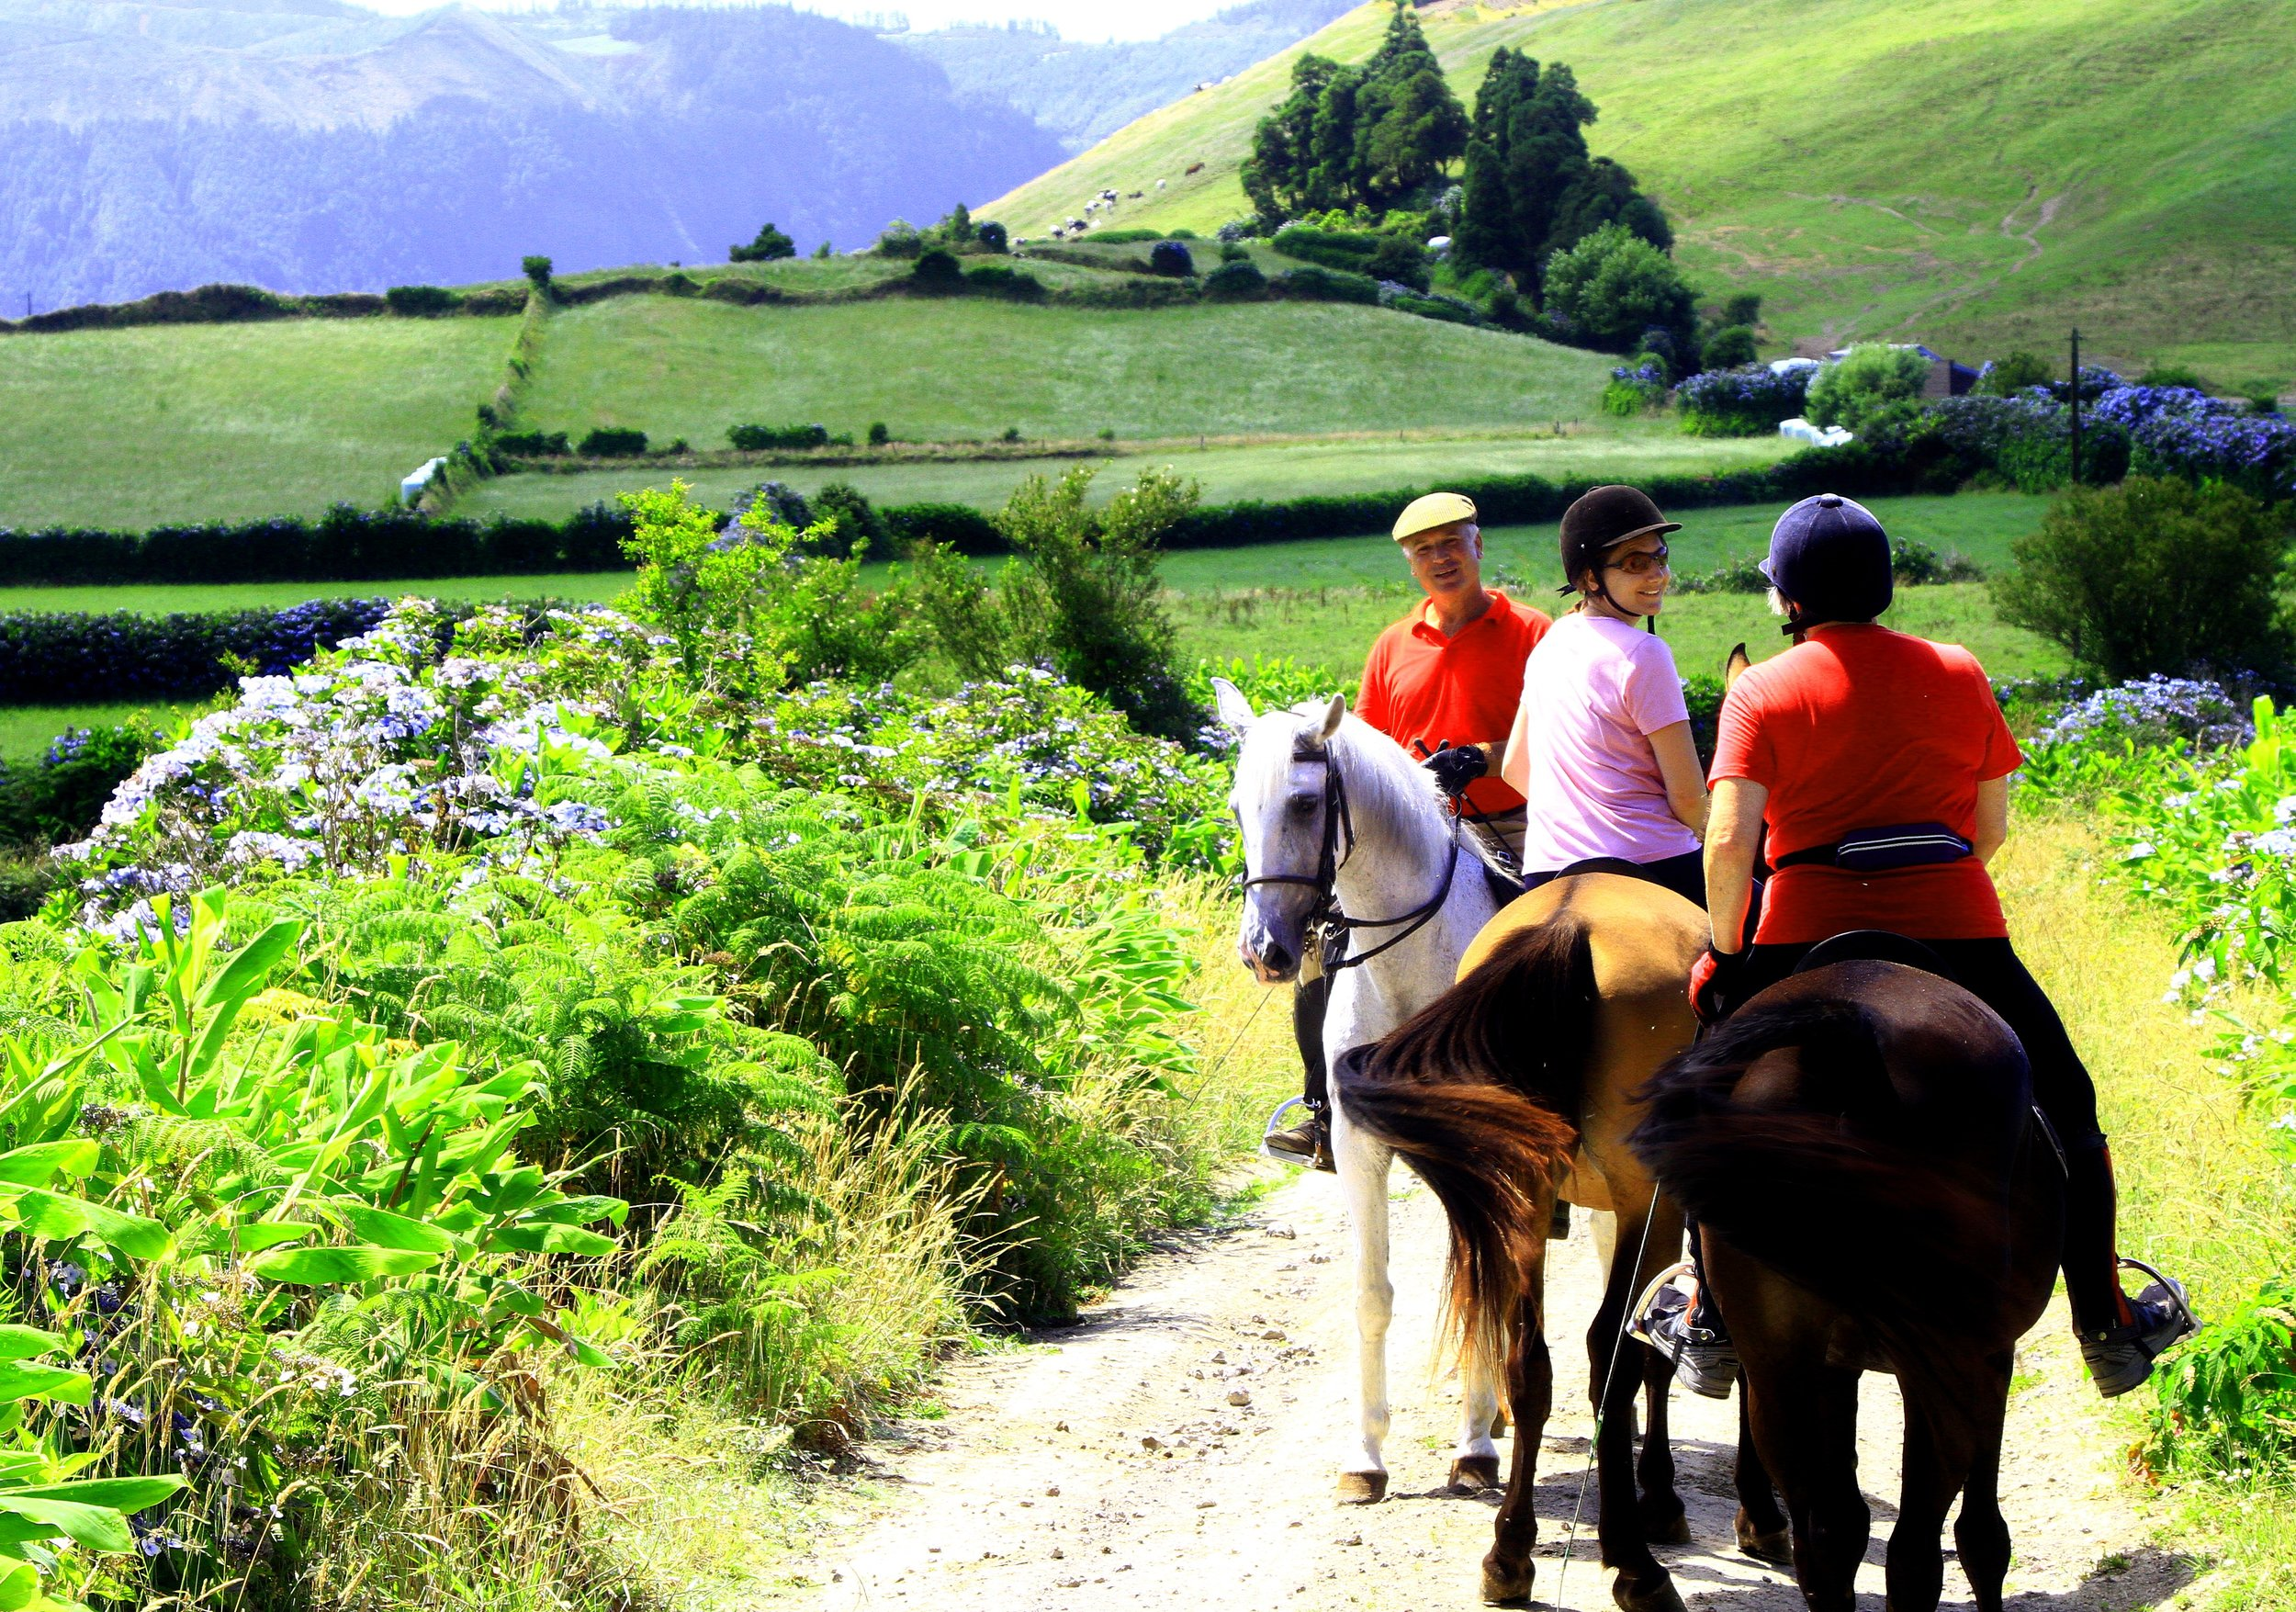 Horse Riding Adventure - Learn More